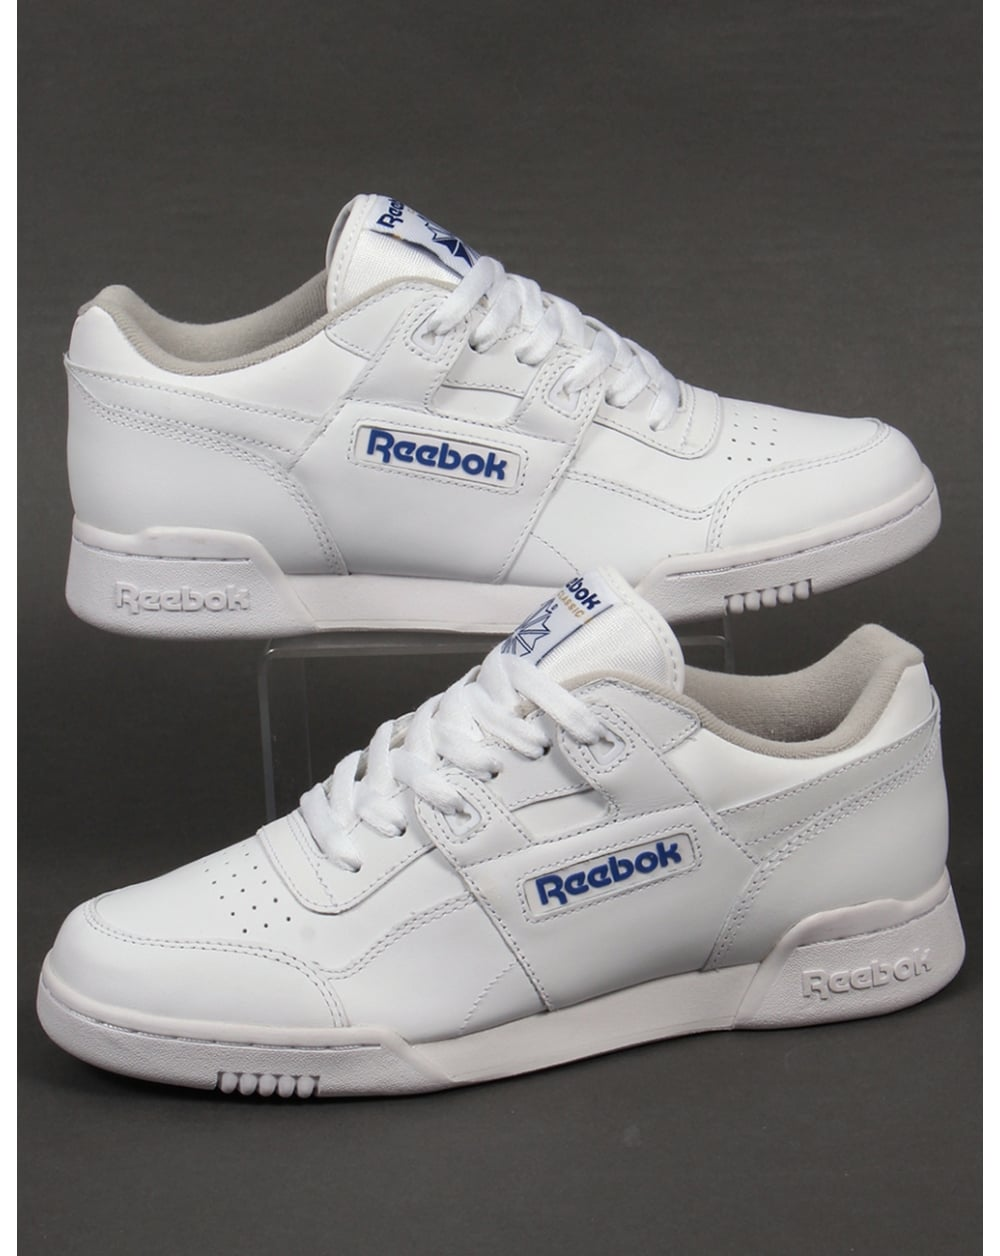 6210761b7cc Reebok Reebok Workout Plus Trainers White